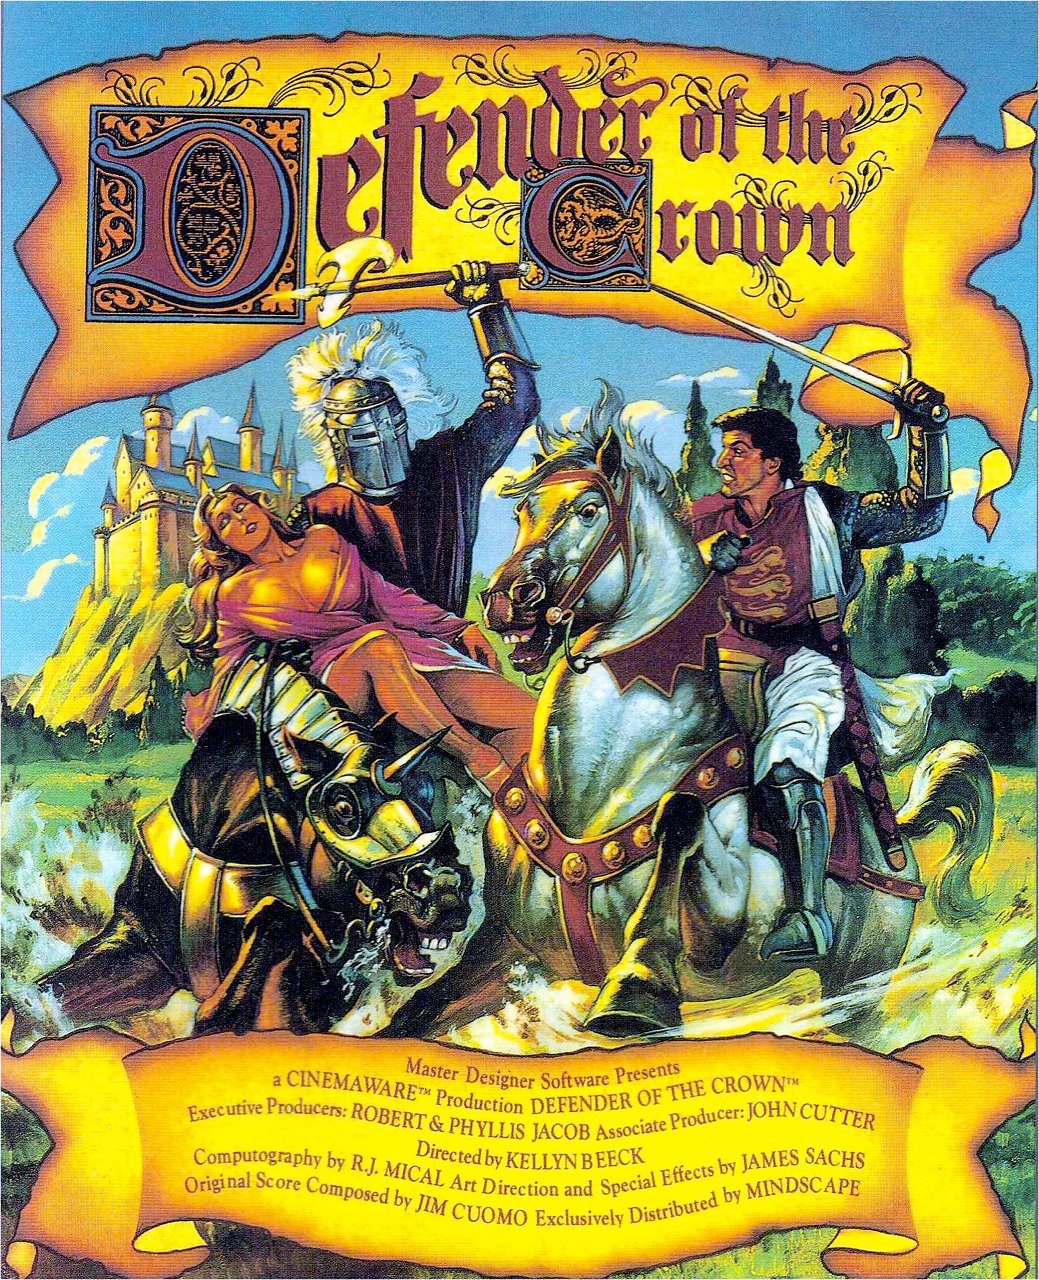 Defender of the Crown von Cinemaware. Action und Strategie im rauhen Mittelalter. (Bild: Cinemaware)